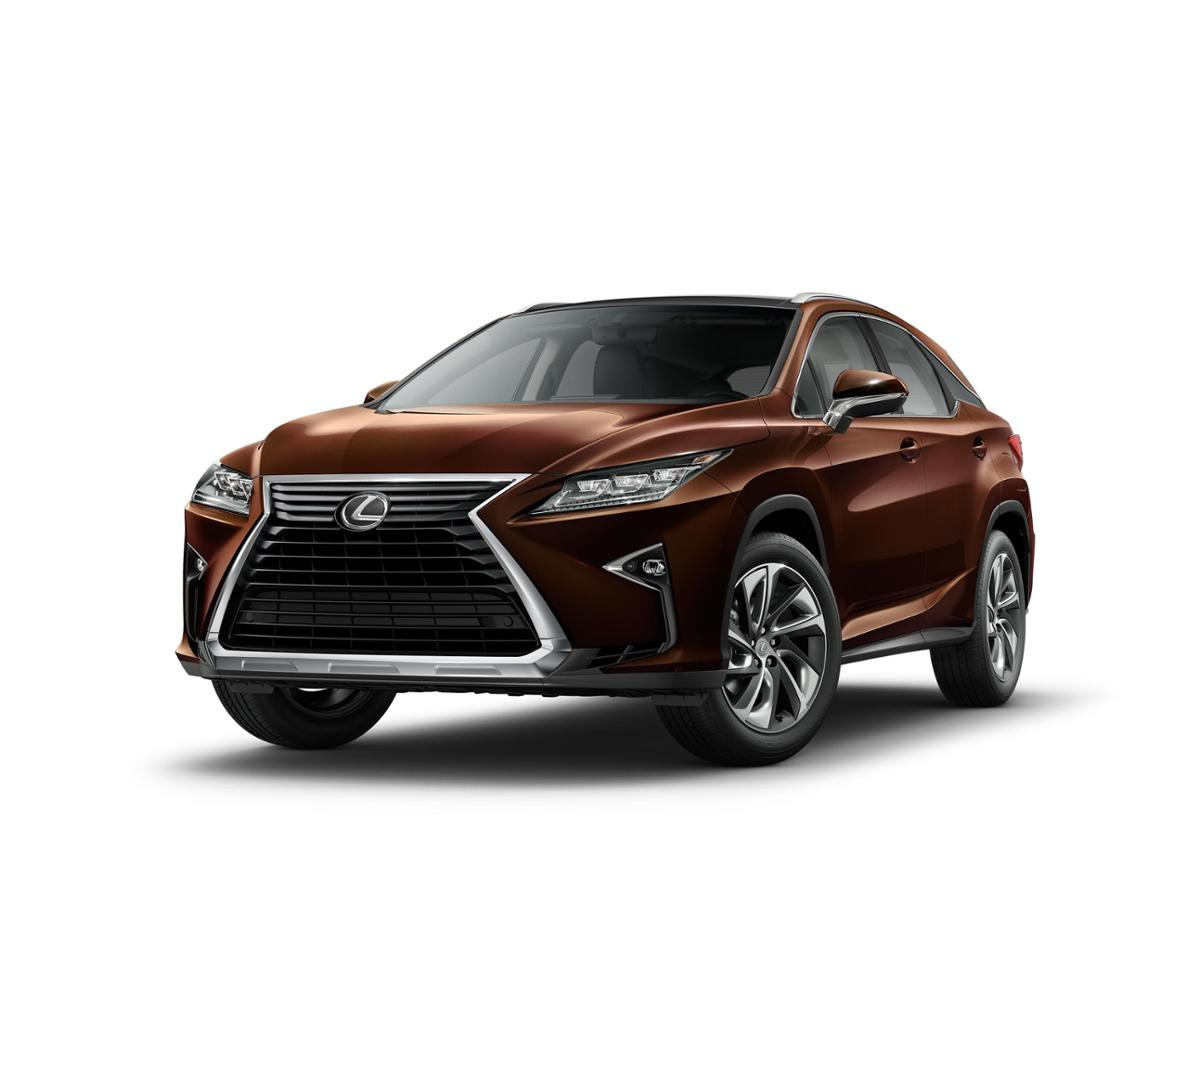 Fort Worth New 2017 Lexus RX 350 Autumn Shimmer: Suv For